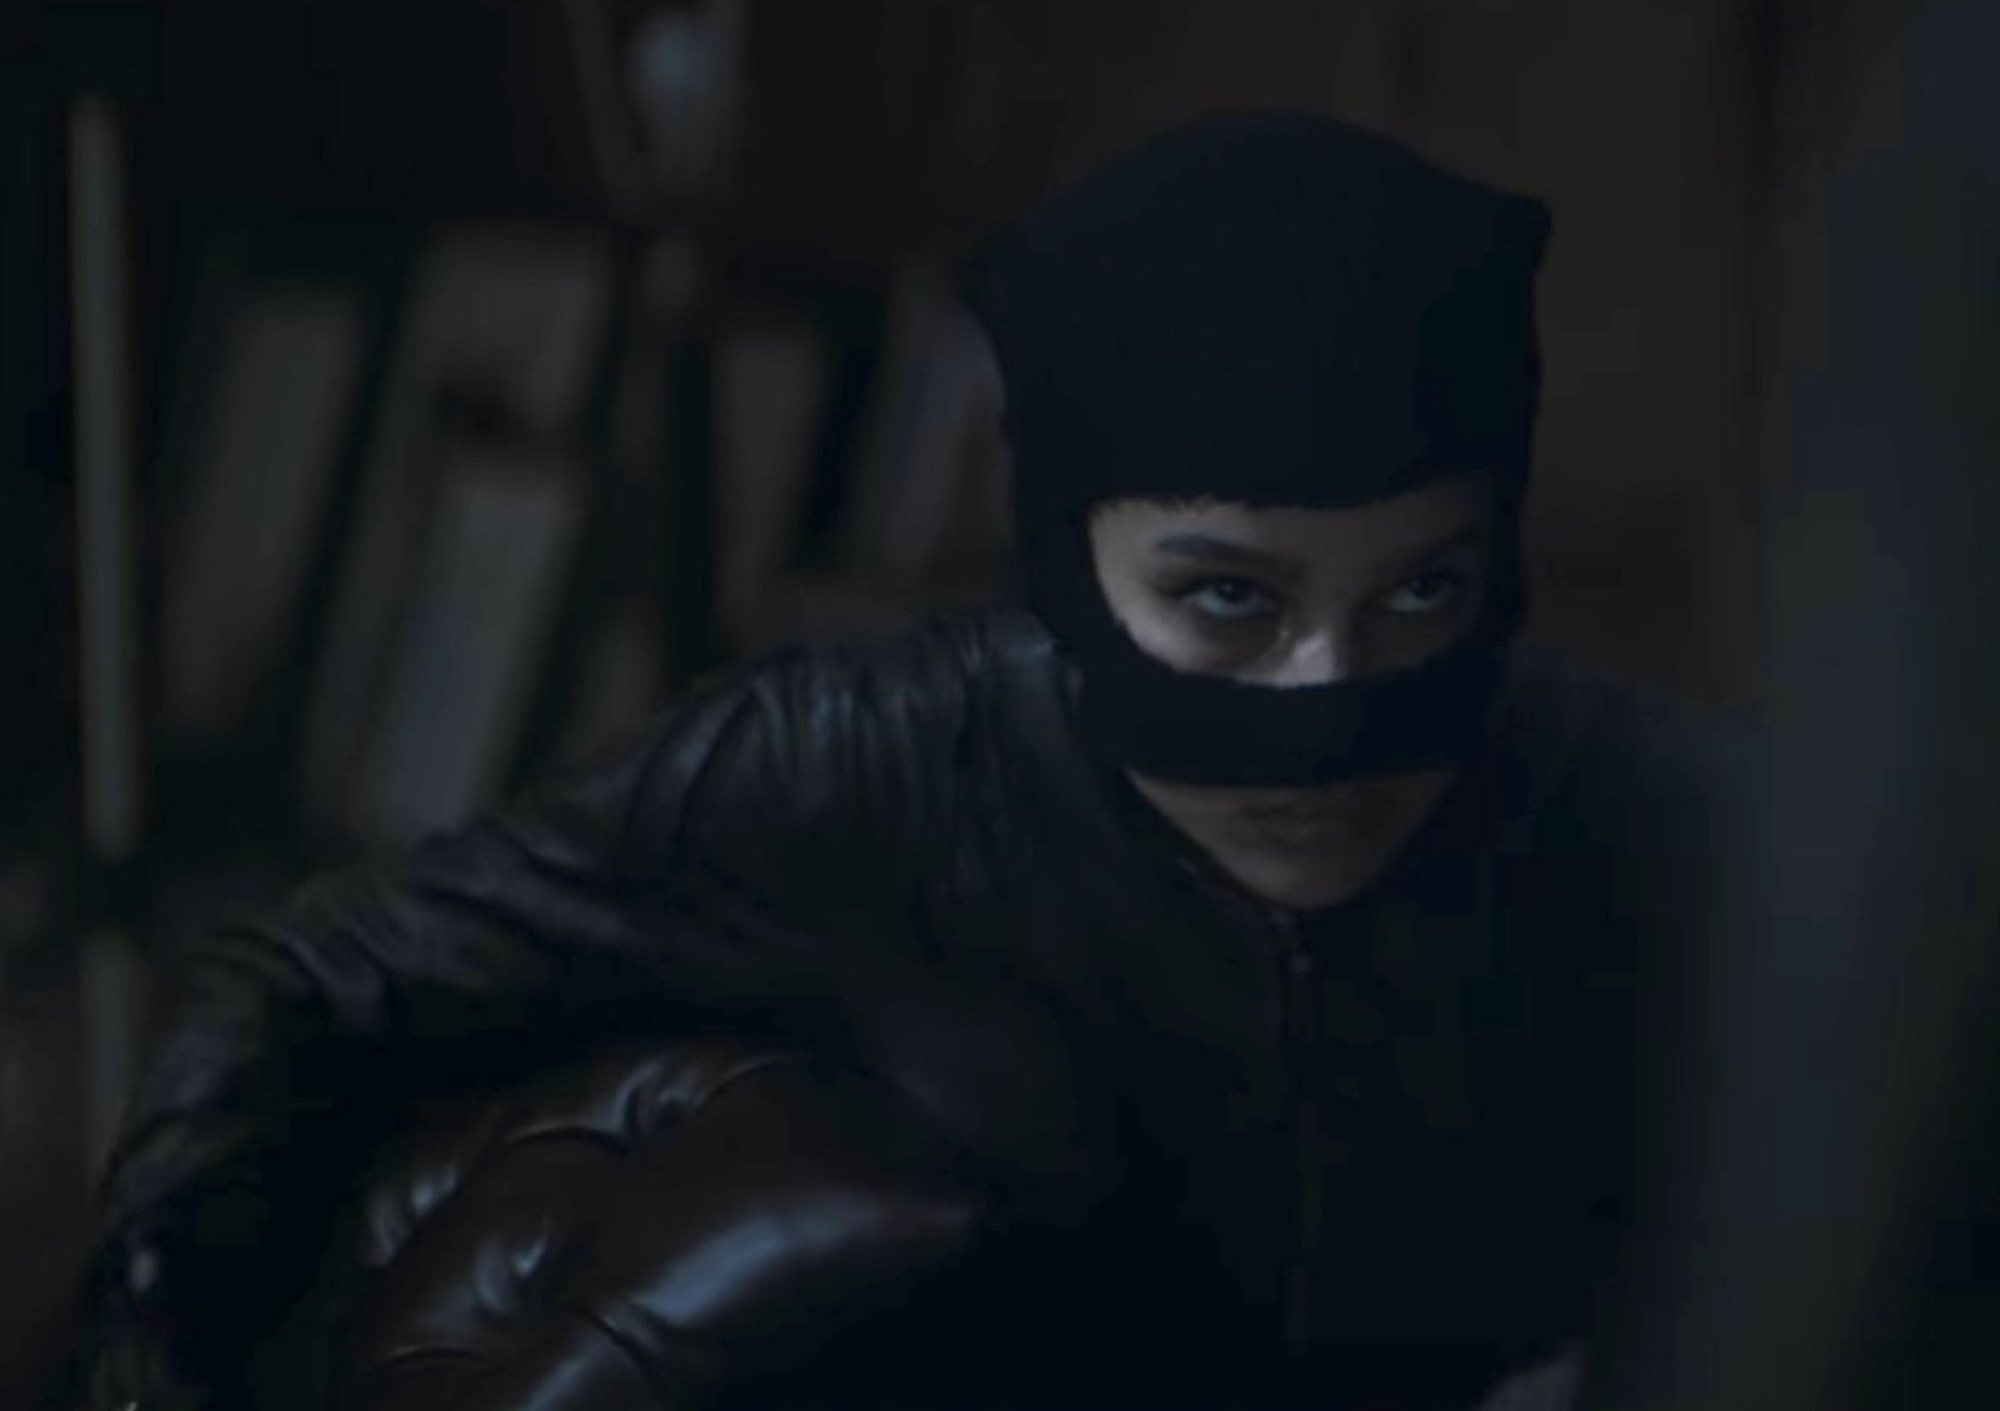 Zoe Kravitz as Catwoman in the new Batman trailer